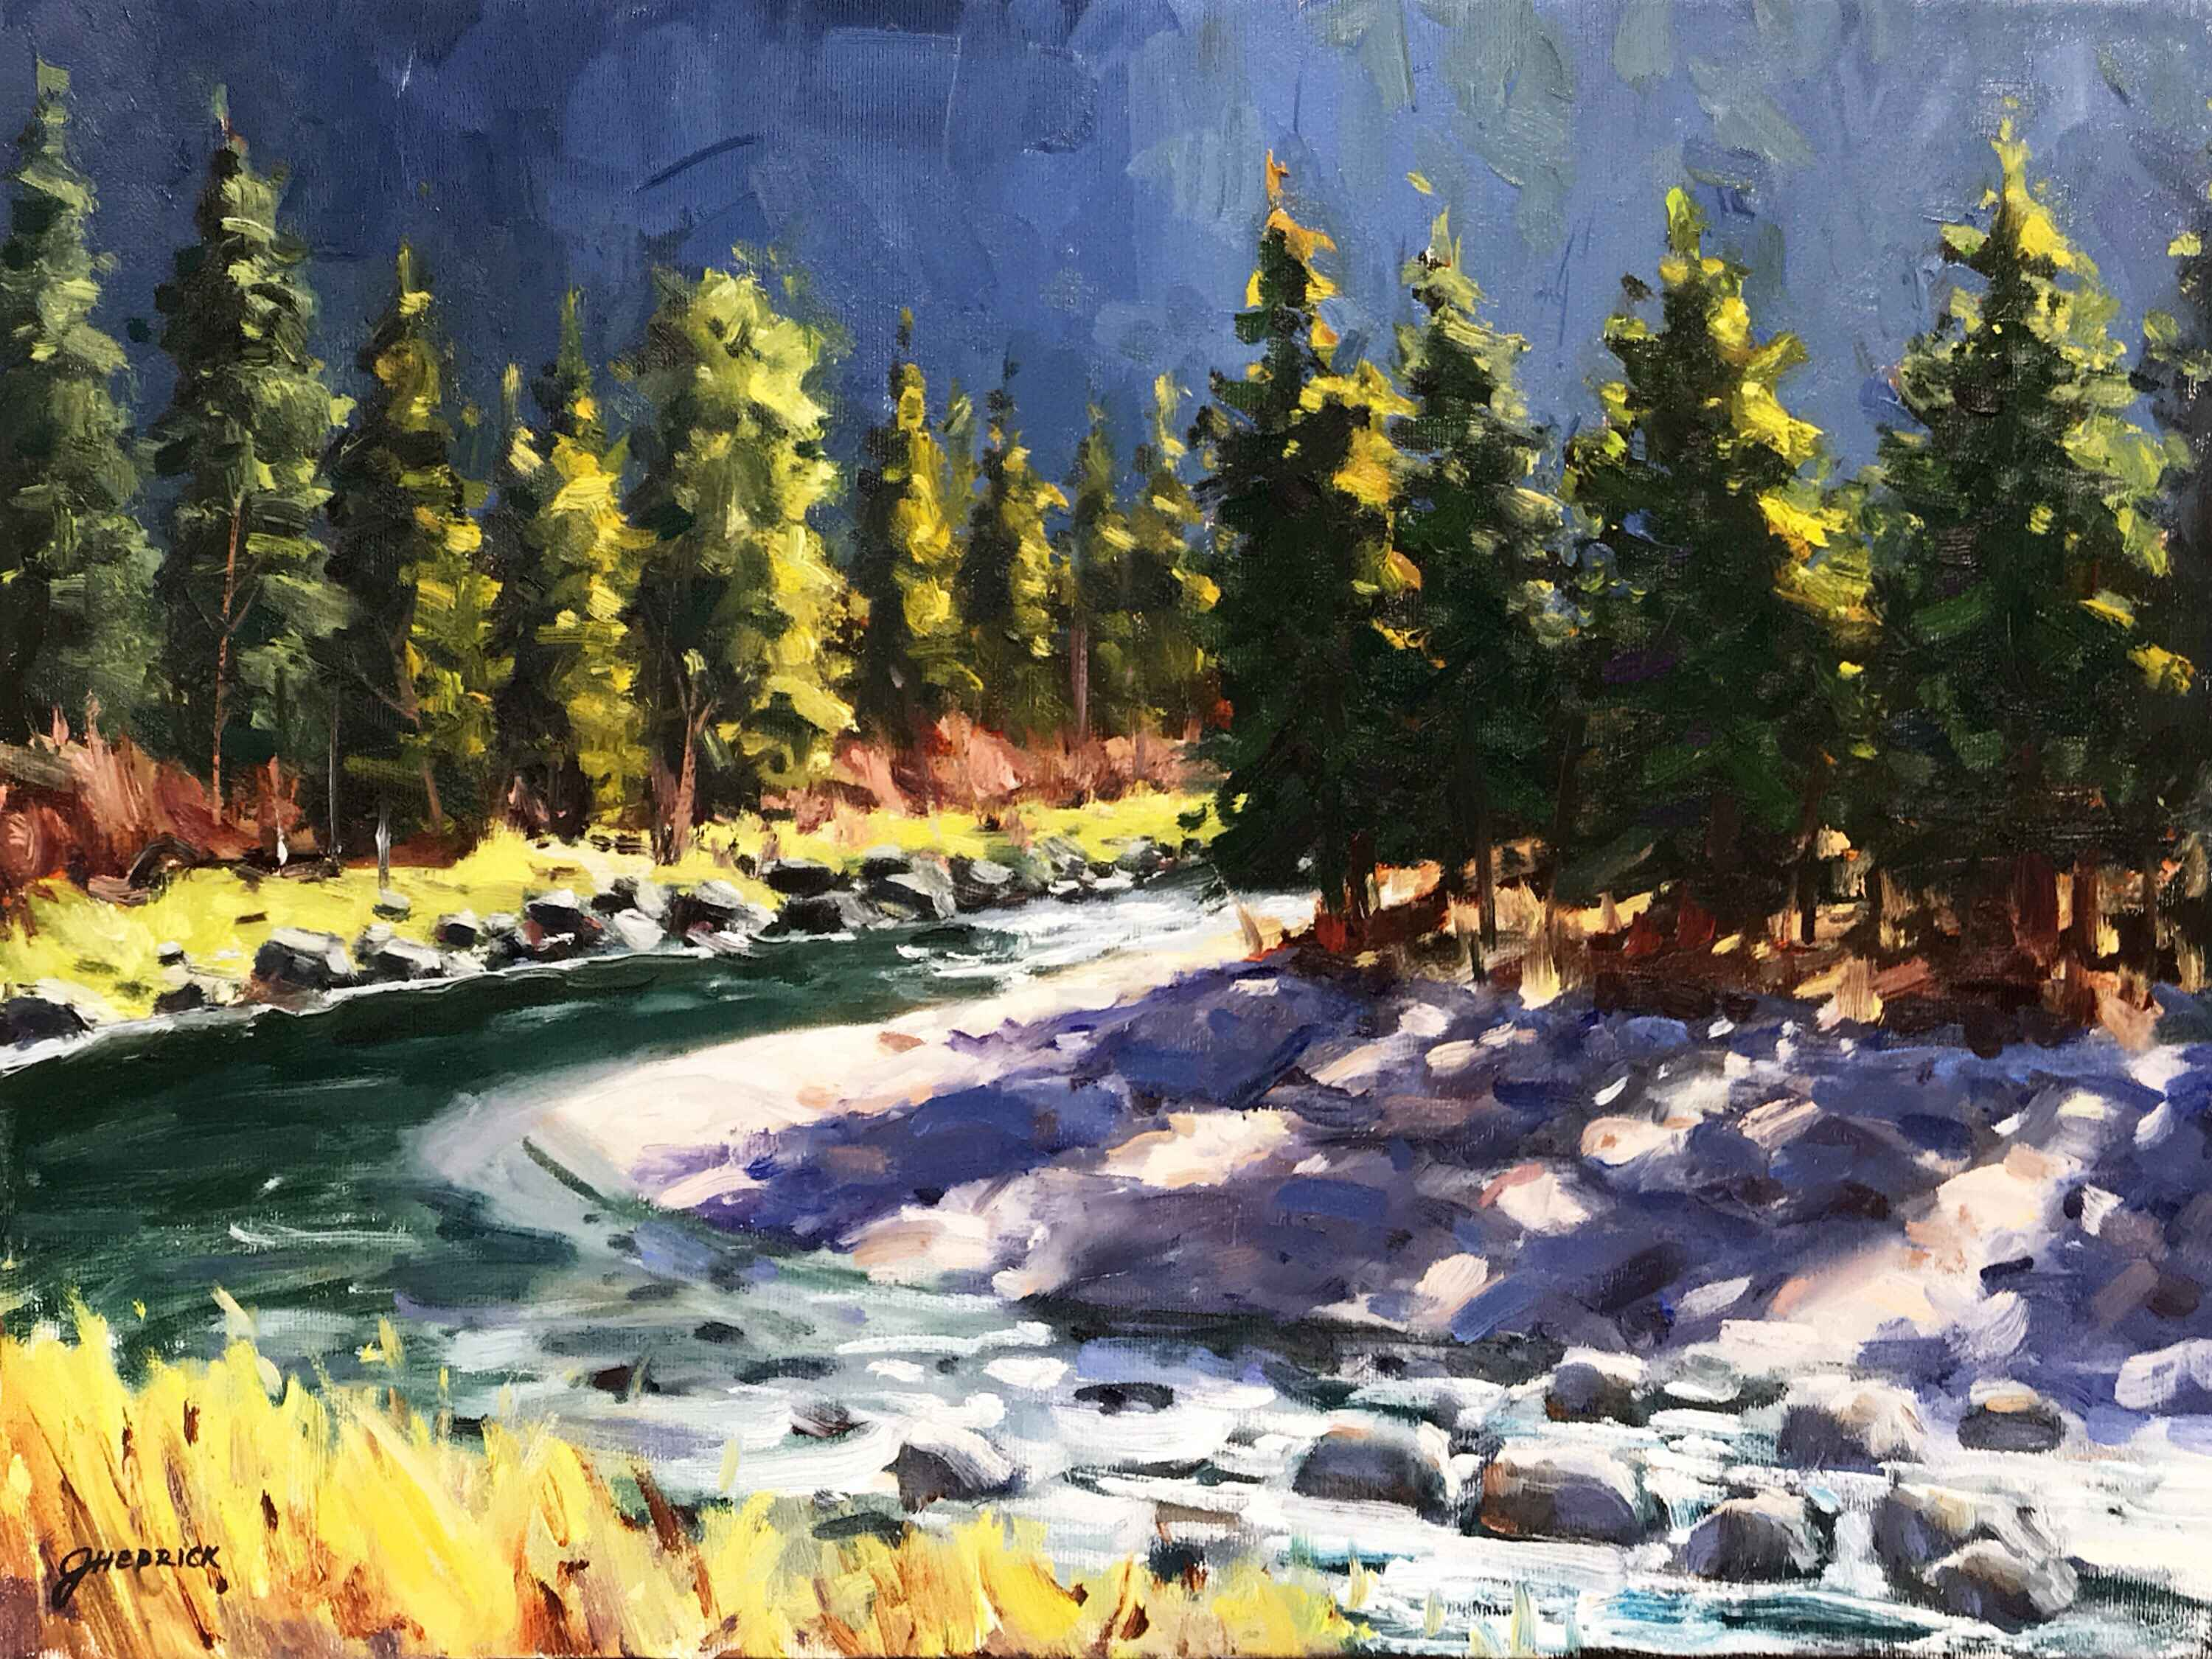 River Rush by  Jessica Hedrick - Masterpiece Online